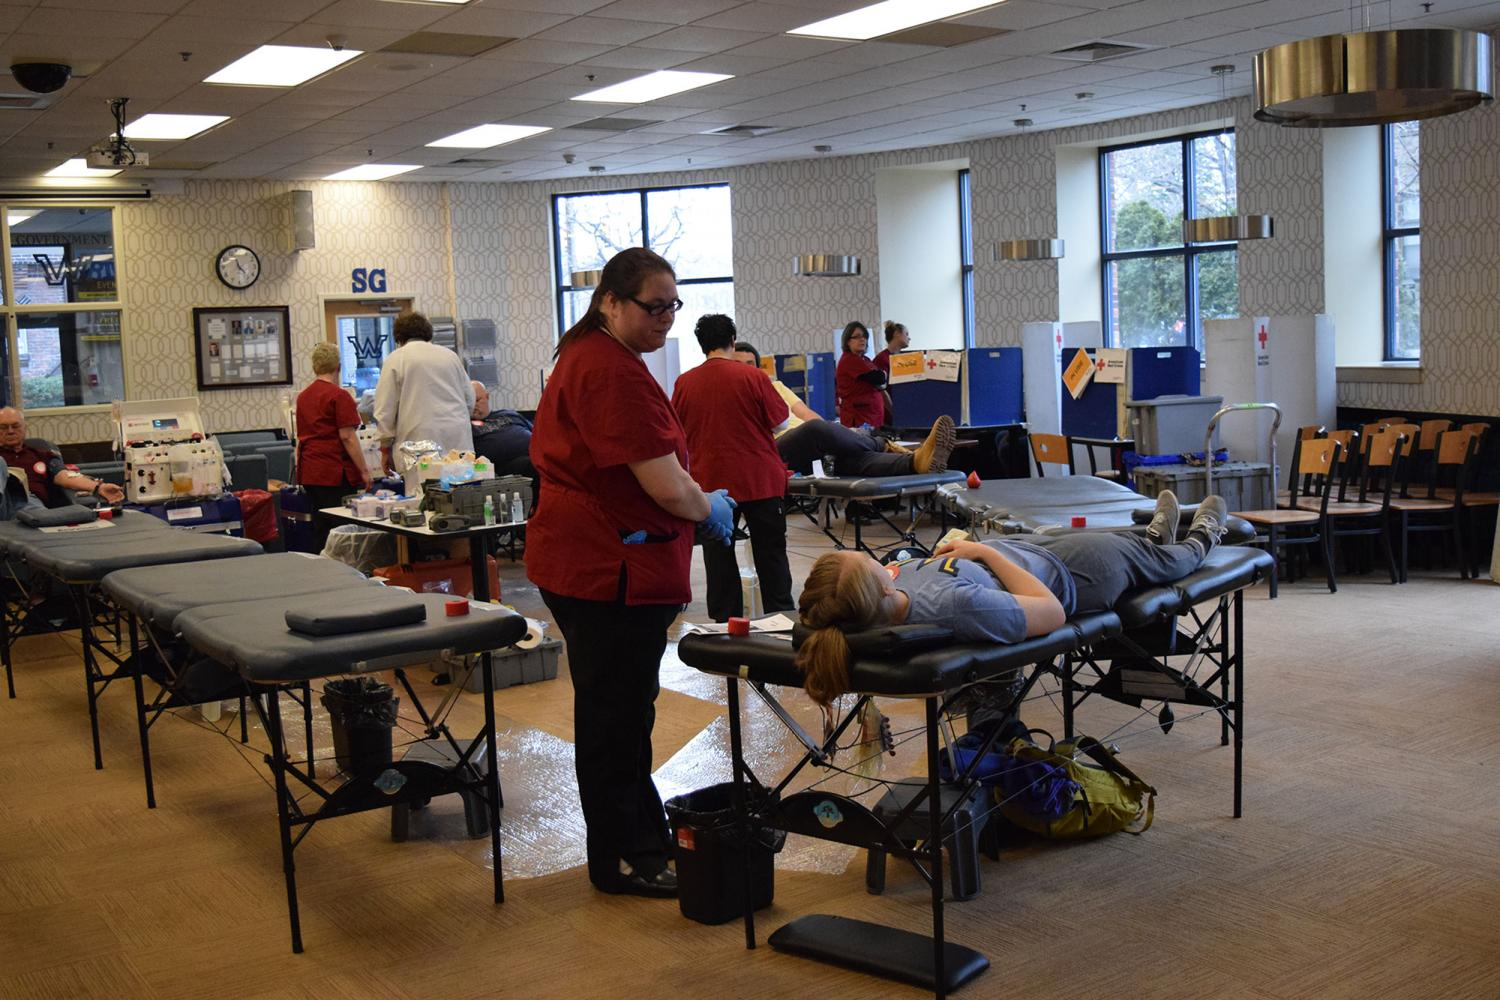 A+student+gets+blood+taken+at+a+February+2017+blood+drive+held+by+Wilkes+University+and+the+American+Red+Cross.